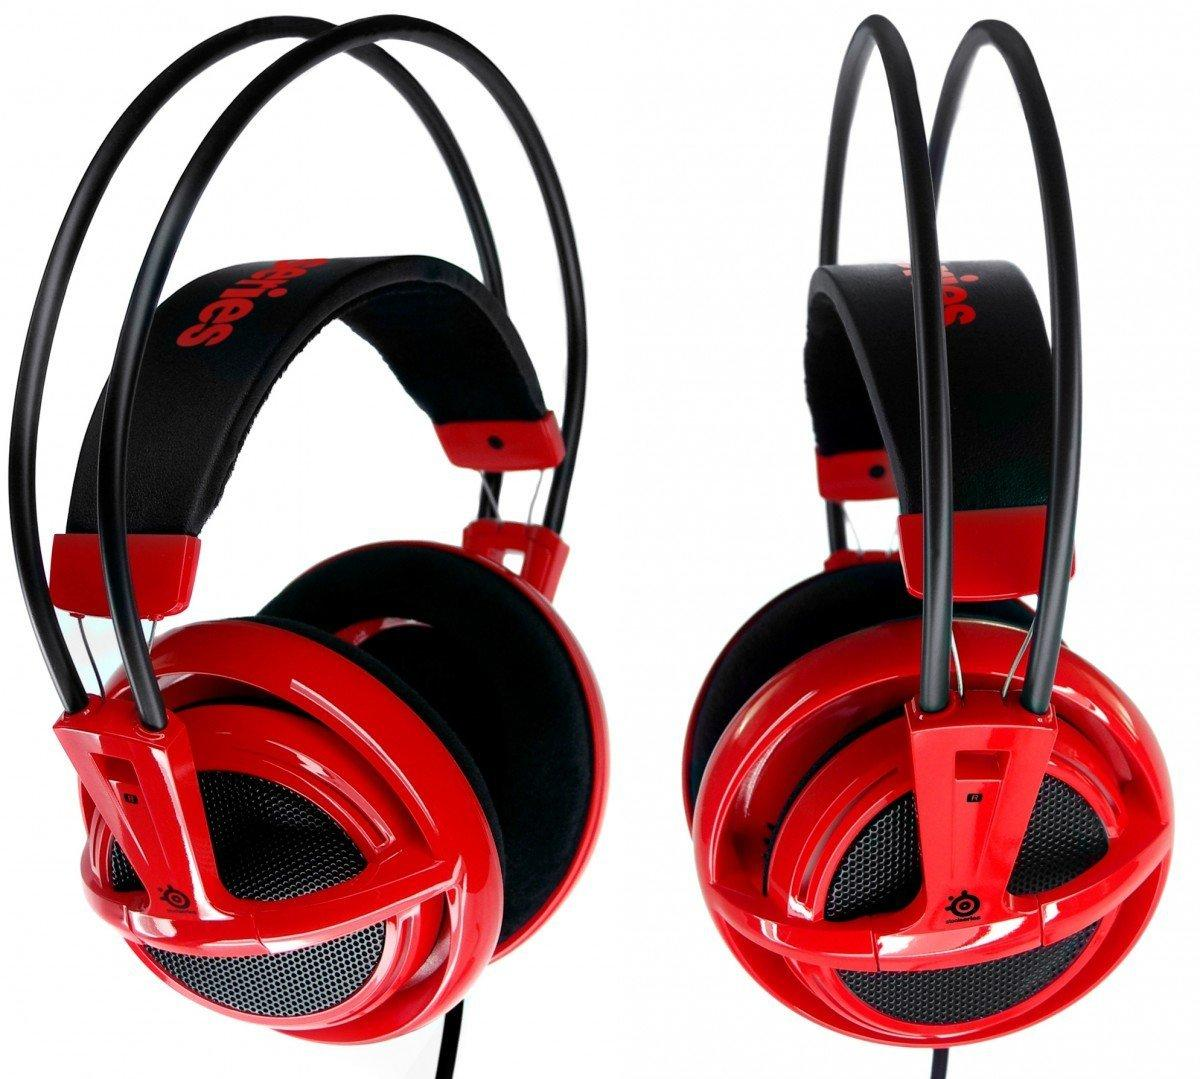 EUR 12.38 MSI Steelseries Siberia V2 Dragon Edition